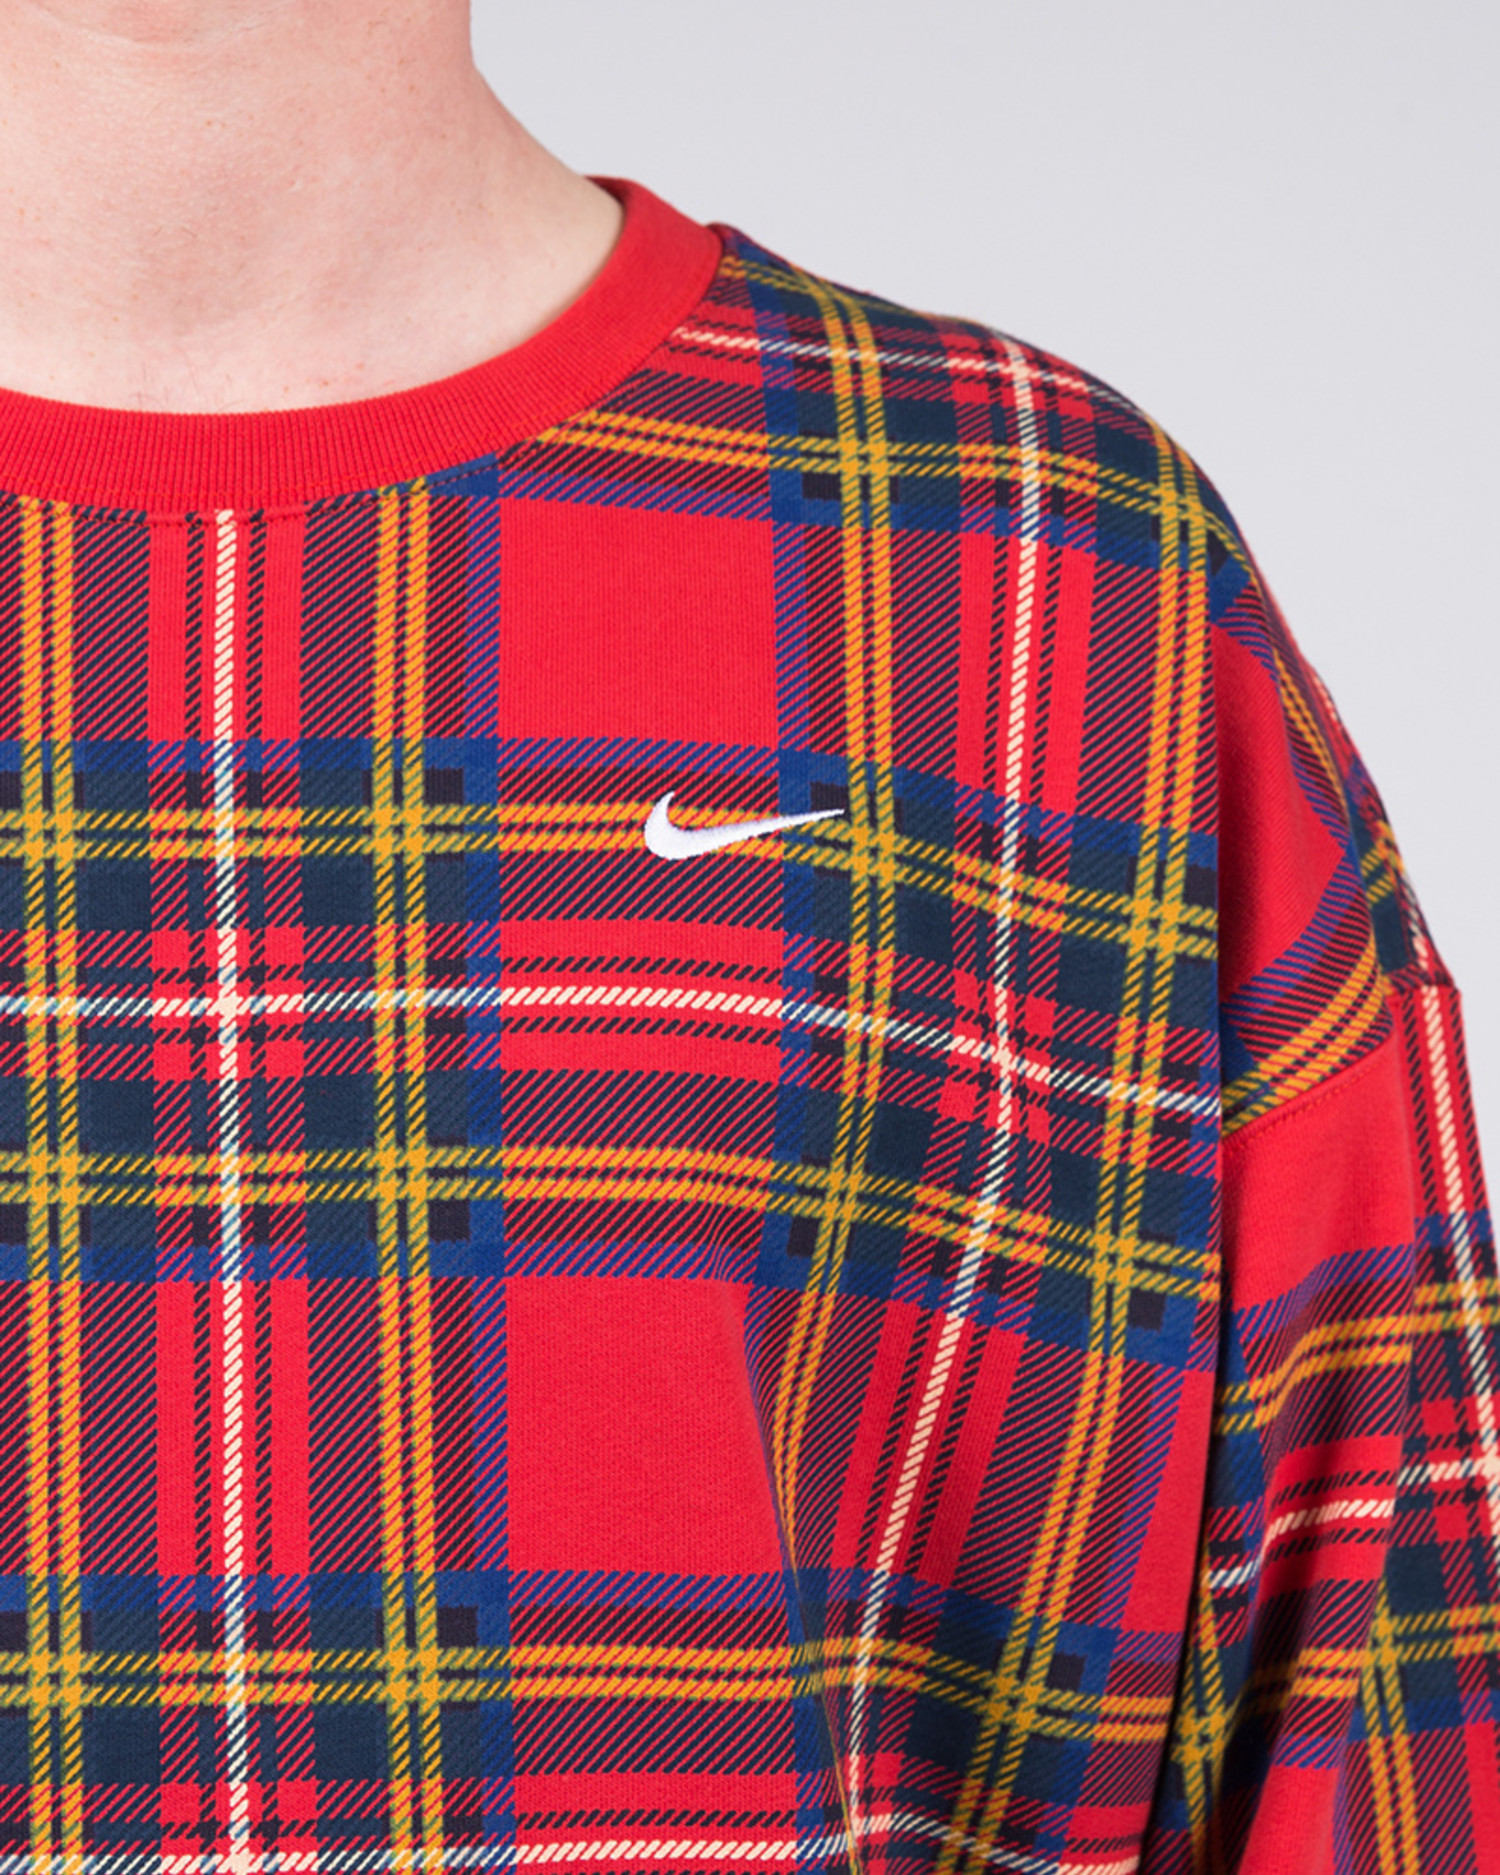 Nike Nrg Crew Plaid Swoosh Stripe